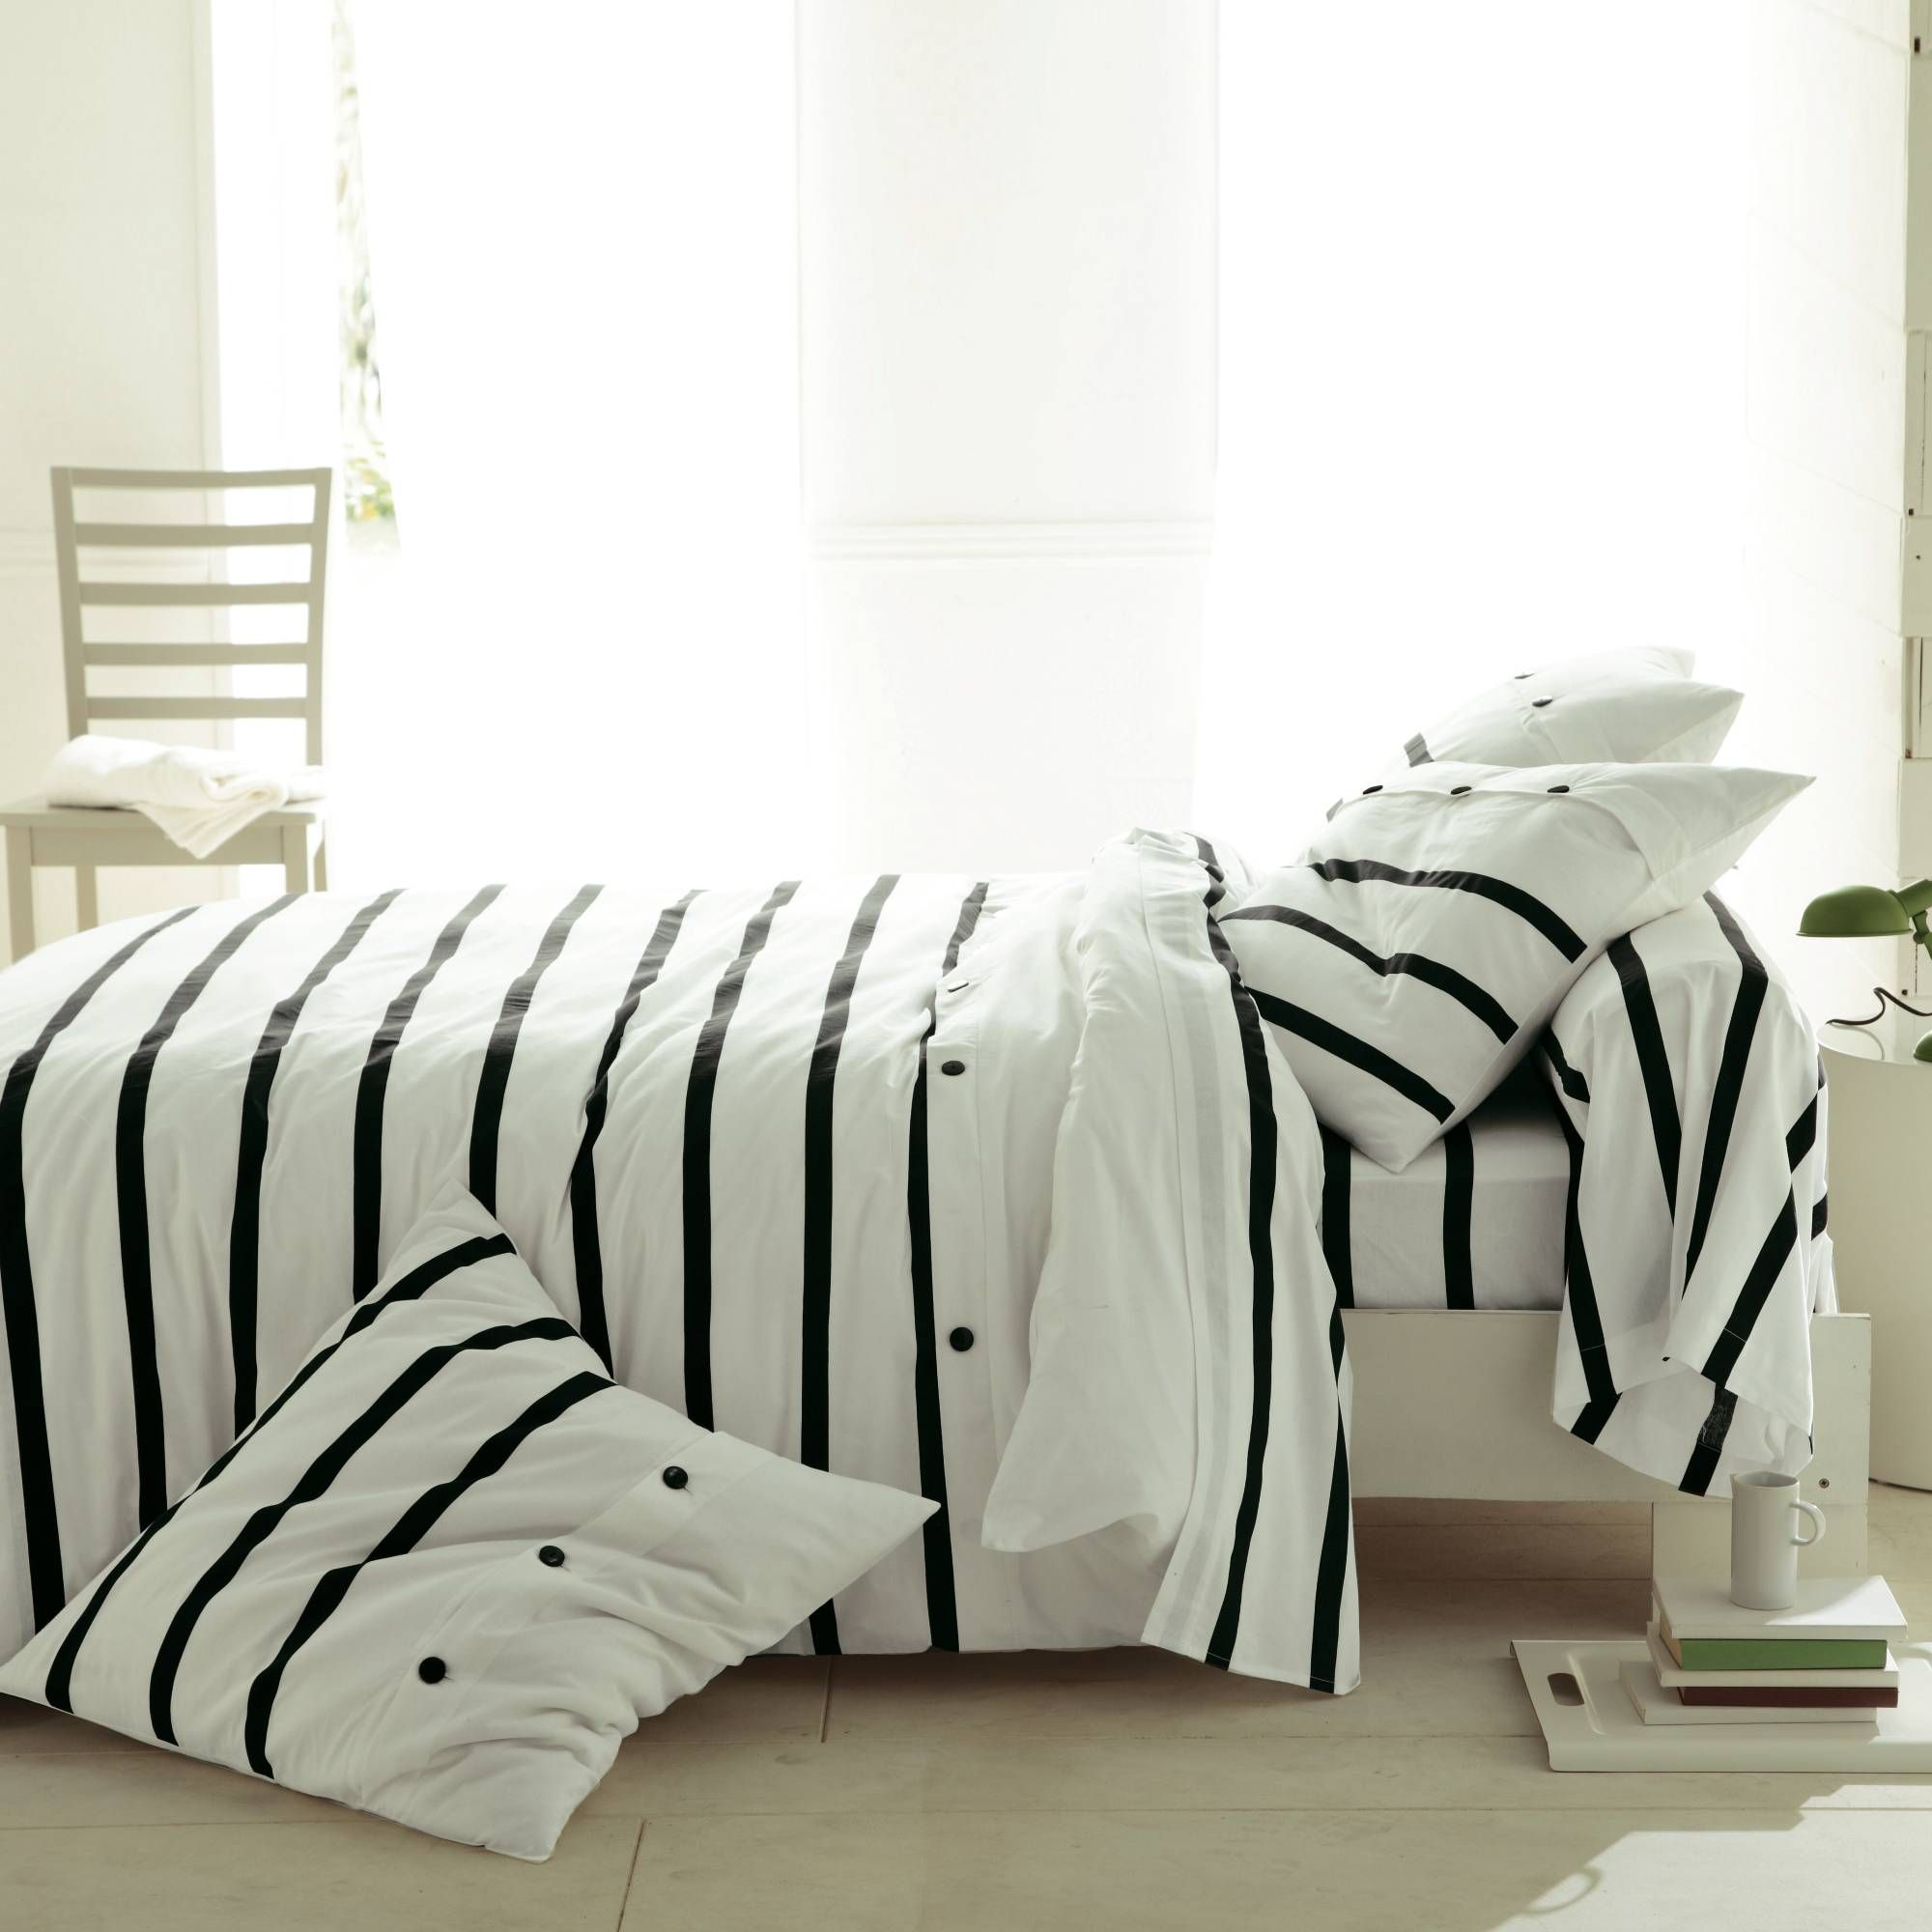 Modern Bedding Sets, Bedroom Interior Trends 2012 (Diy Pillows Black